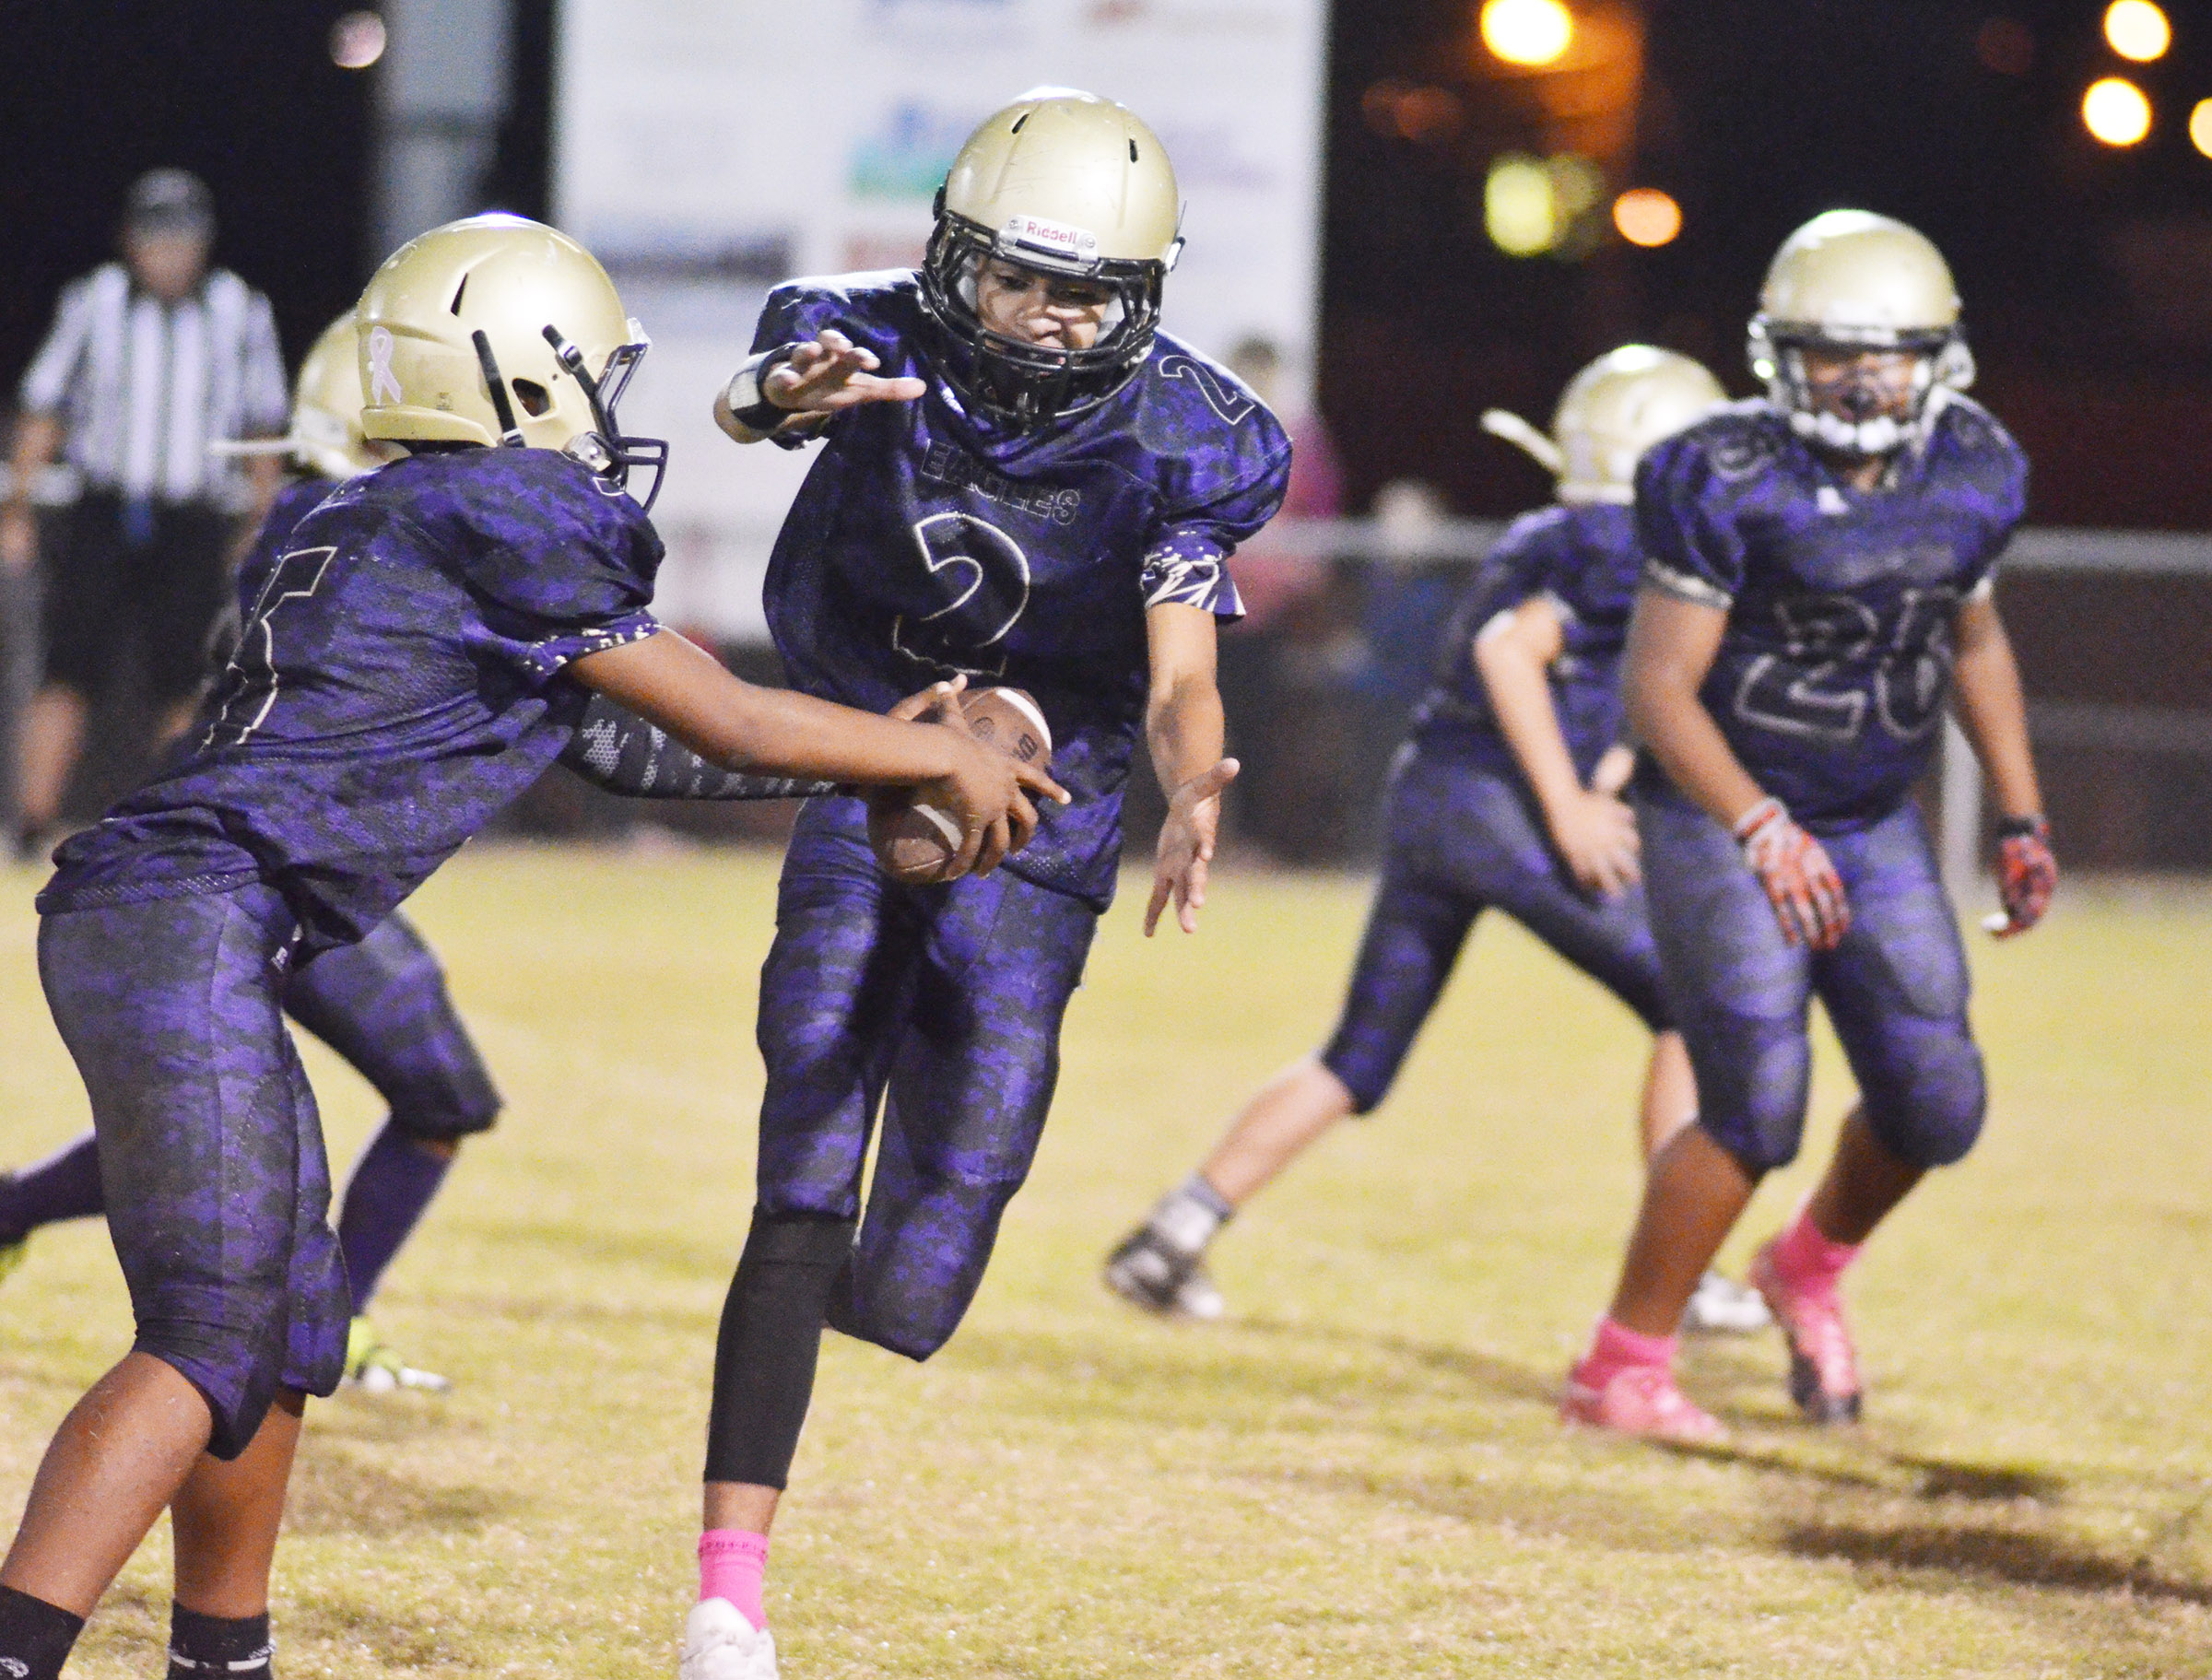 CMS seventh-grader Deondre Weathers passes the ball to eighth-grader Adrien Smith.